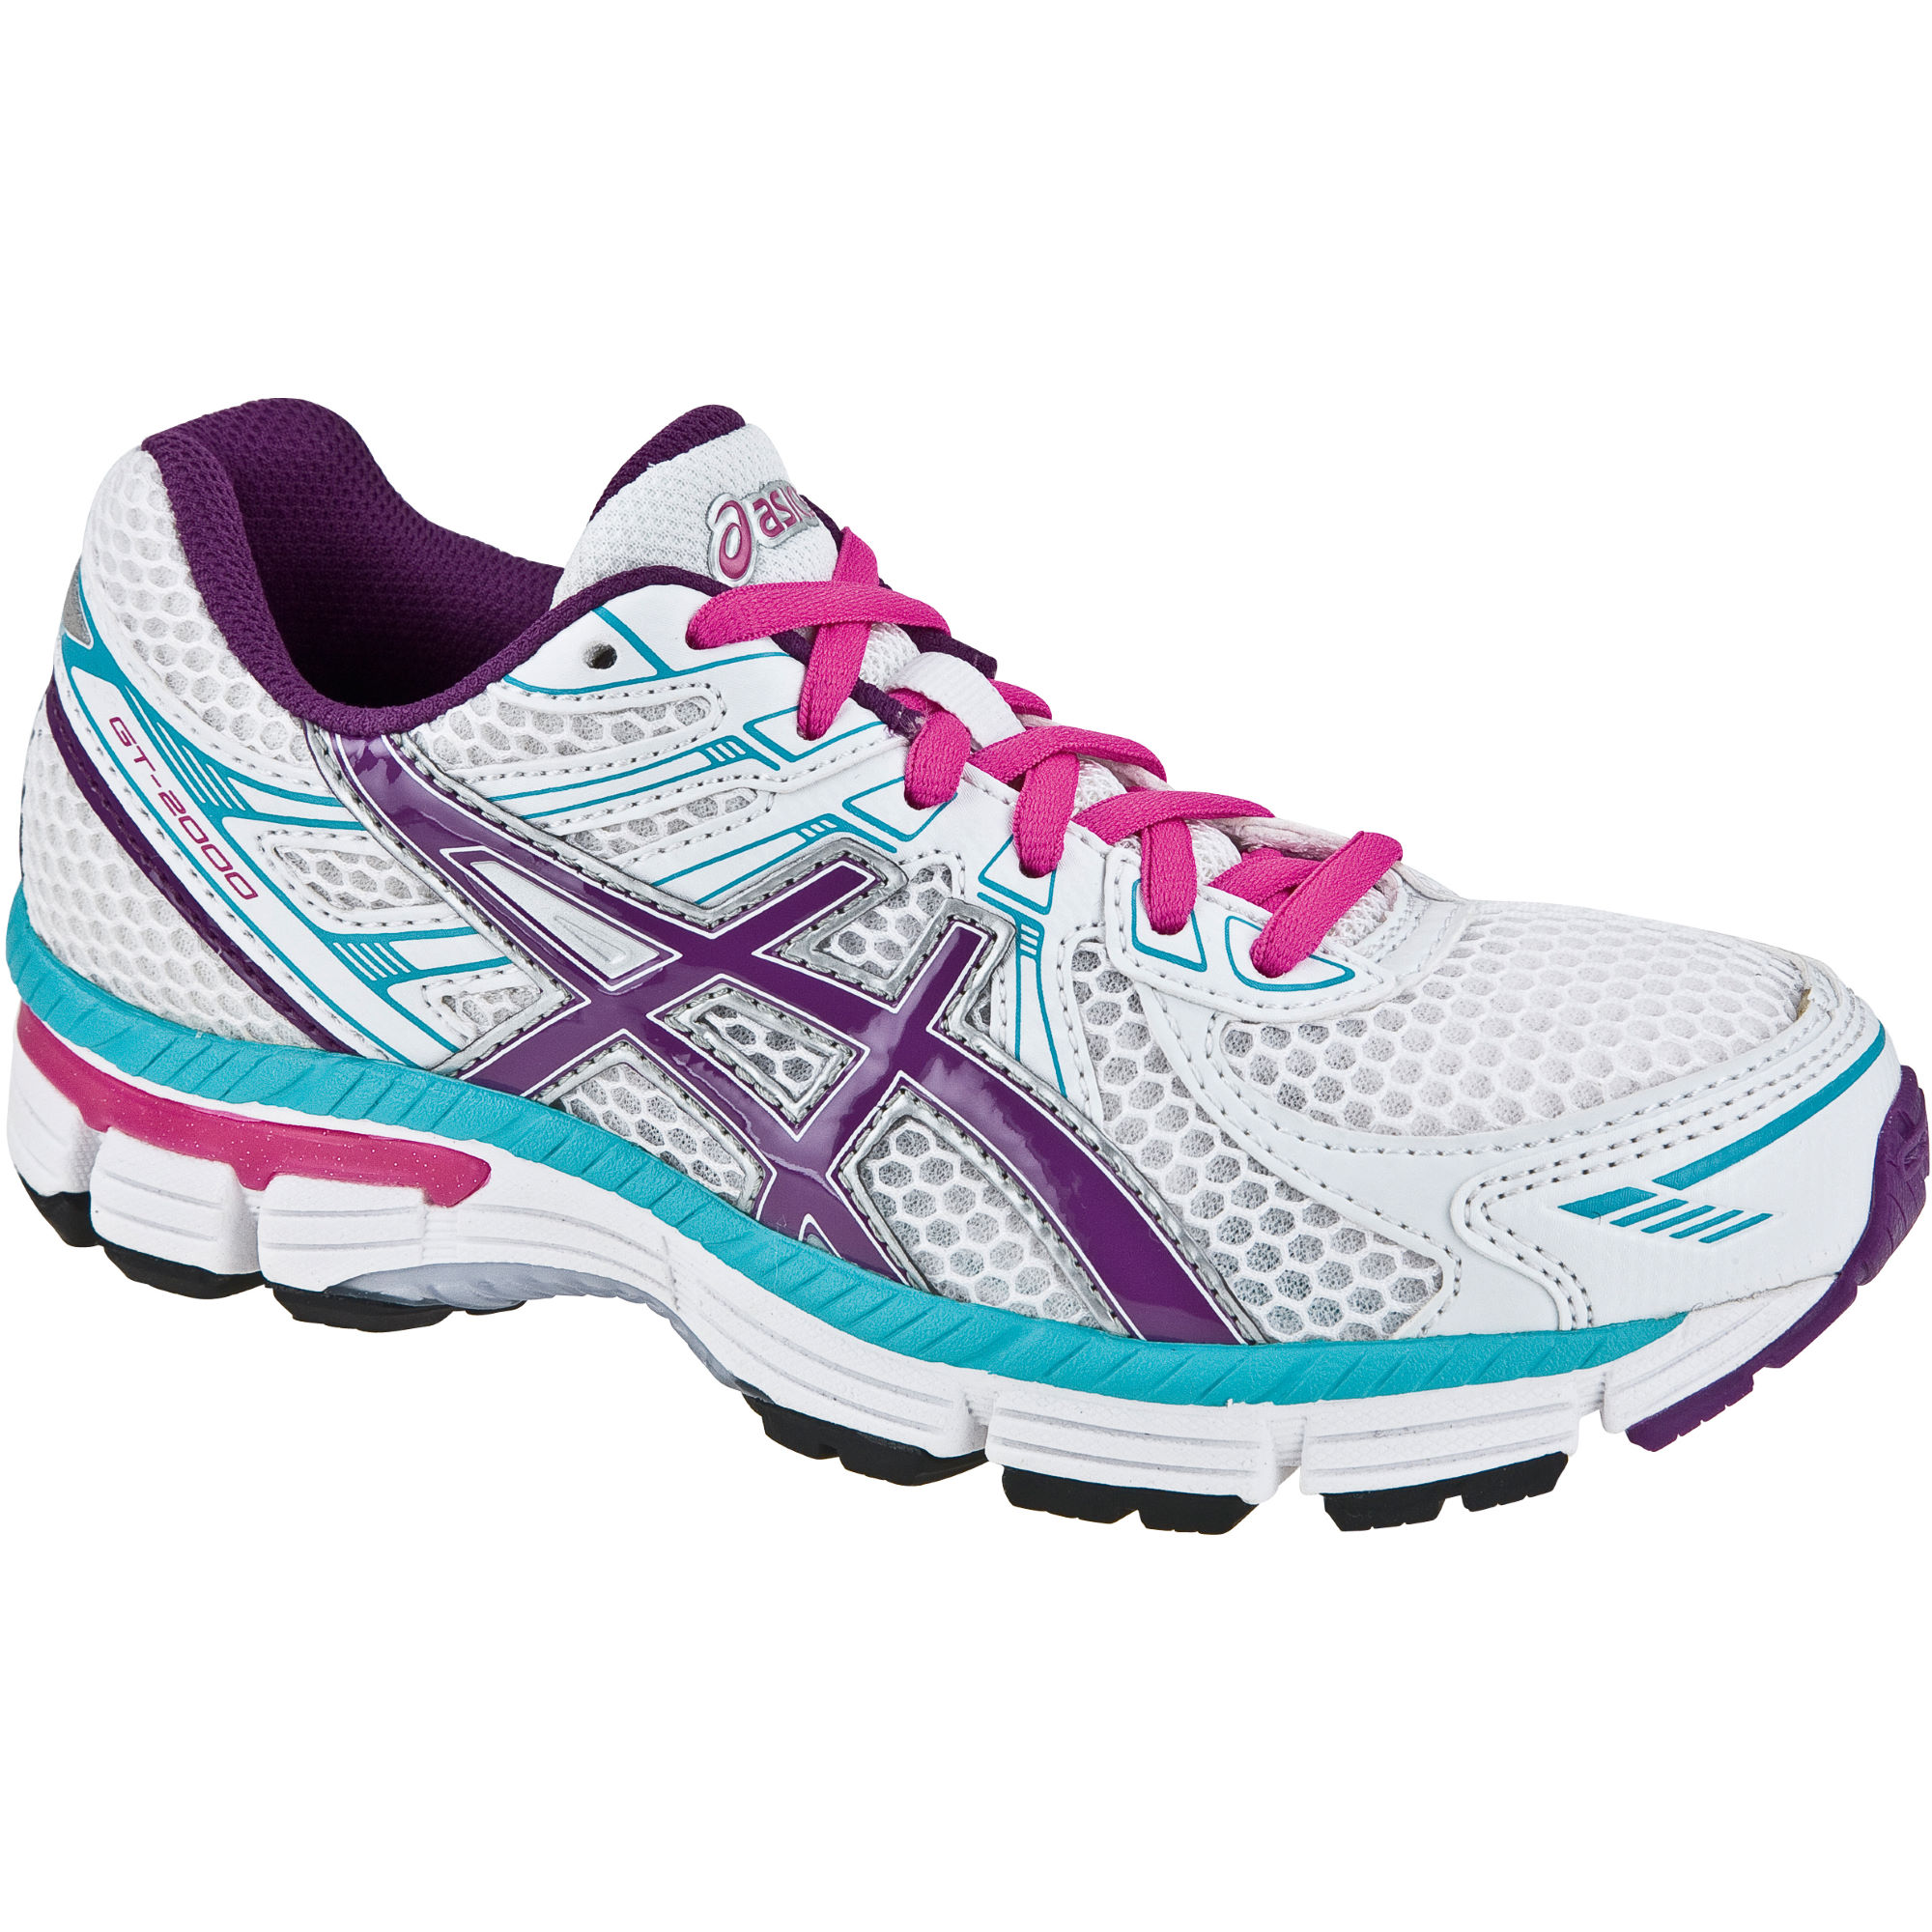 wiggle asics kids gt 2000 gs shoes stability running shoes. Black Bedroom Furniture Sets. Home Design Ideas